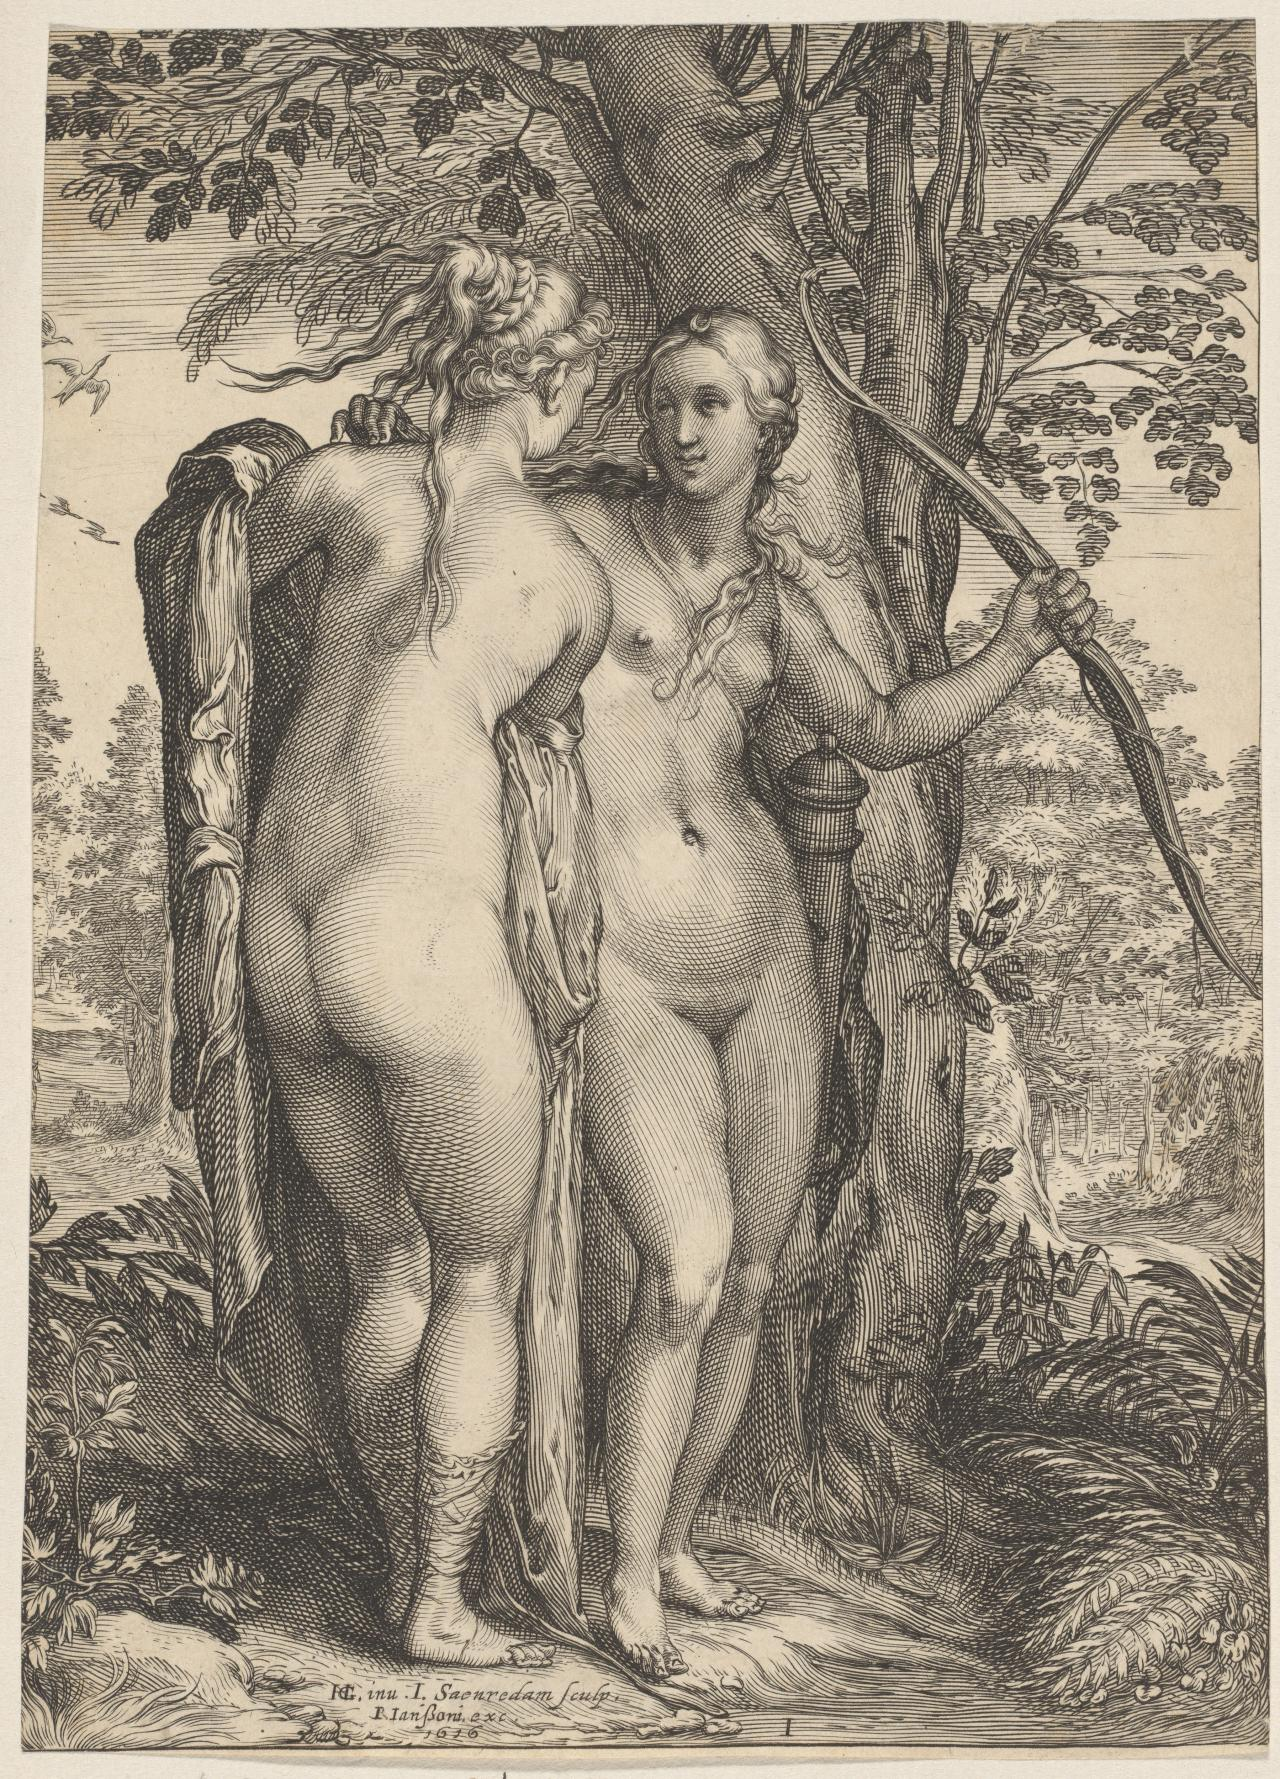 Two nymphs of Diana standing before a tree